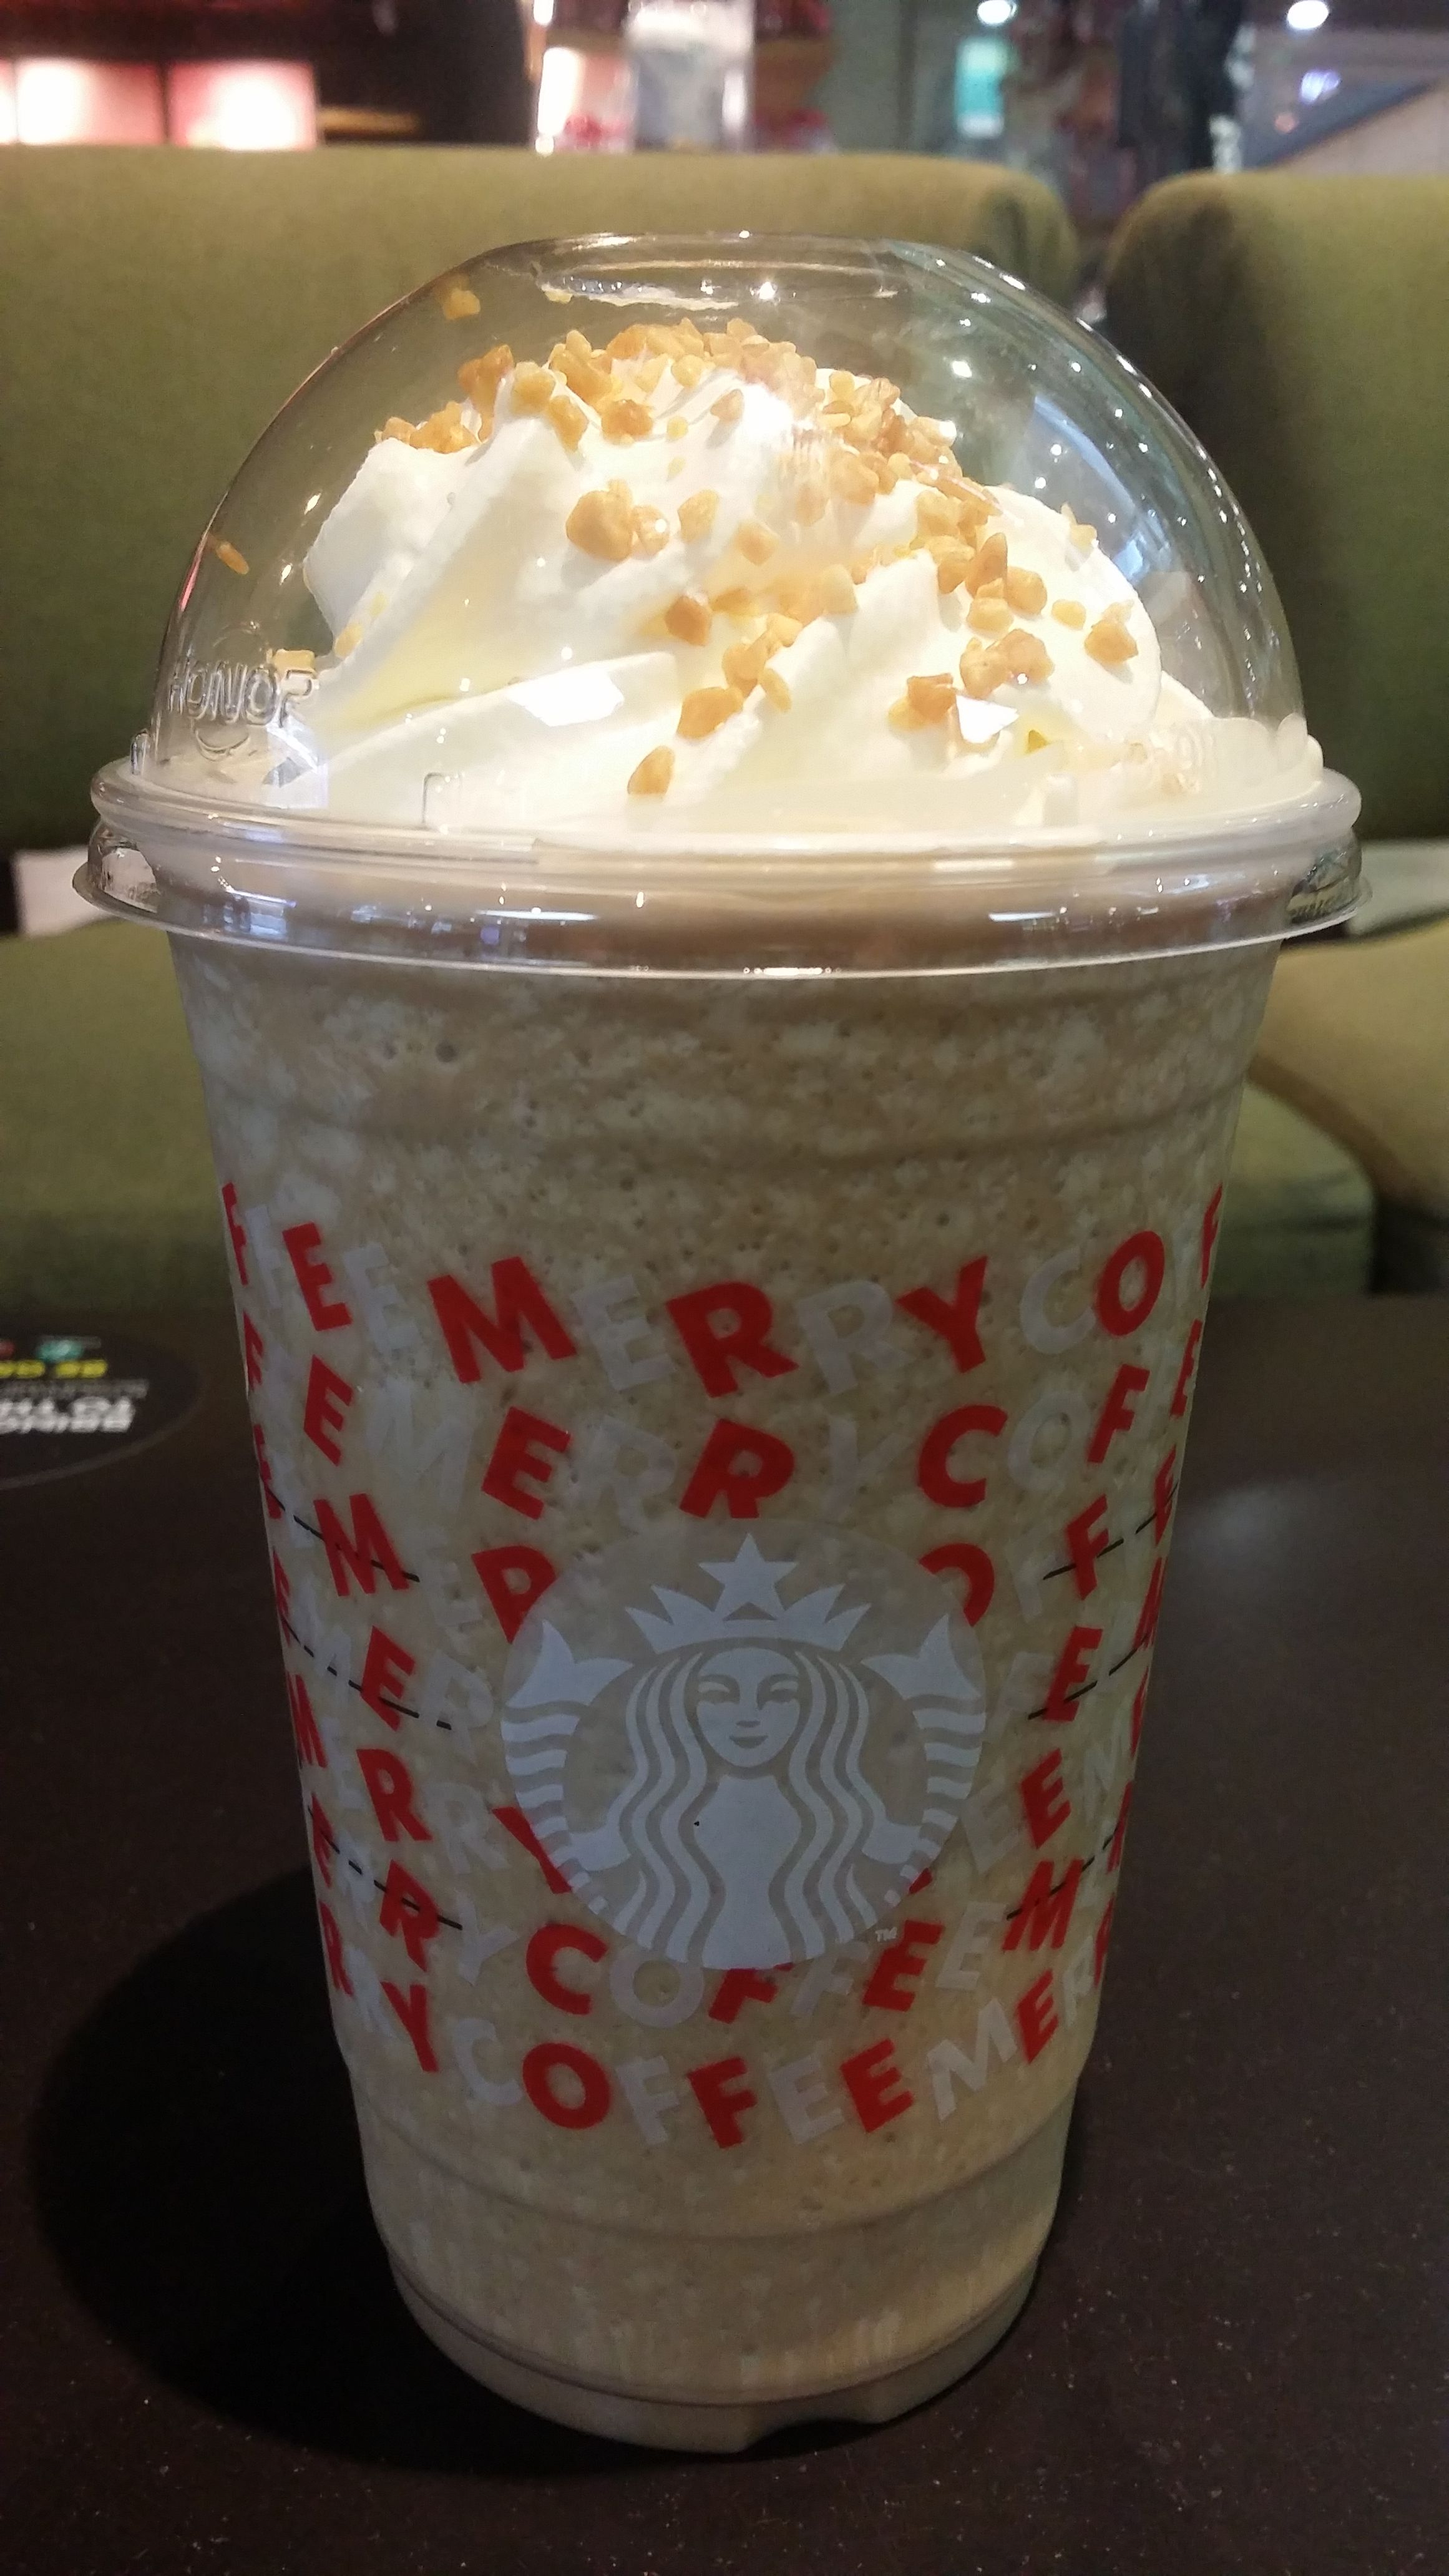 Toffee Nut Crunch Frappe At Starbucks